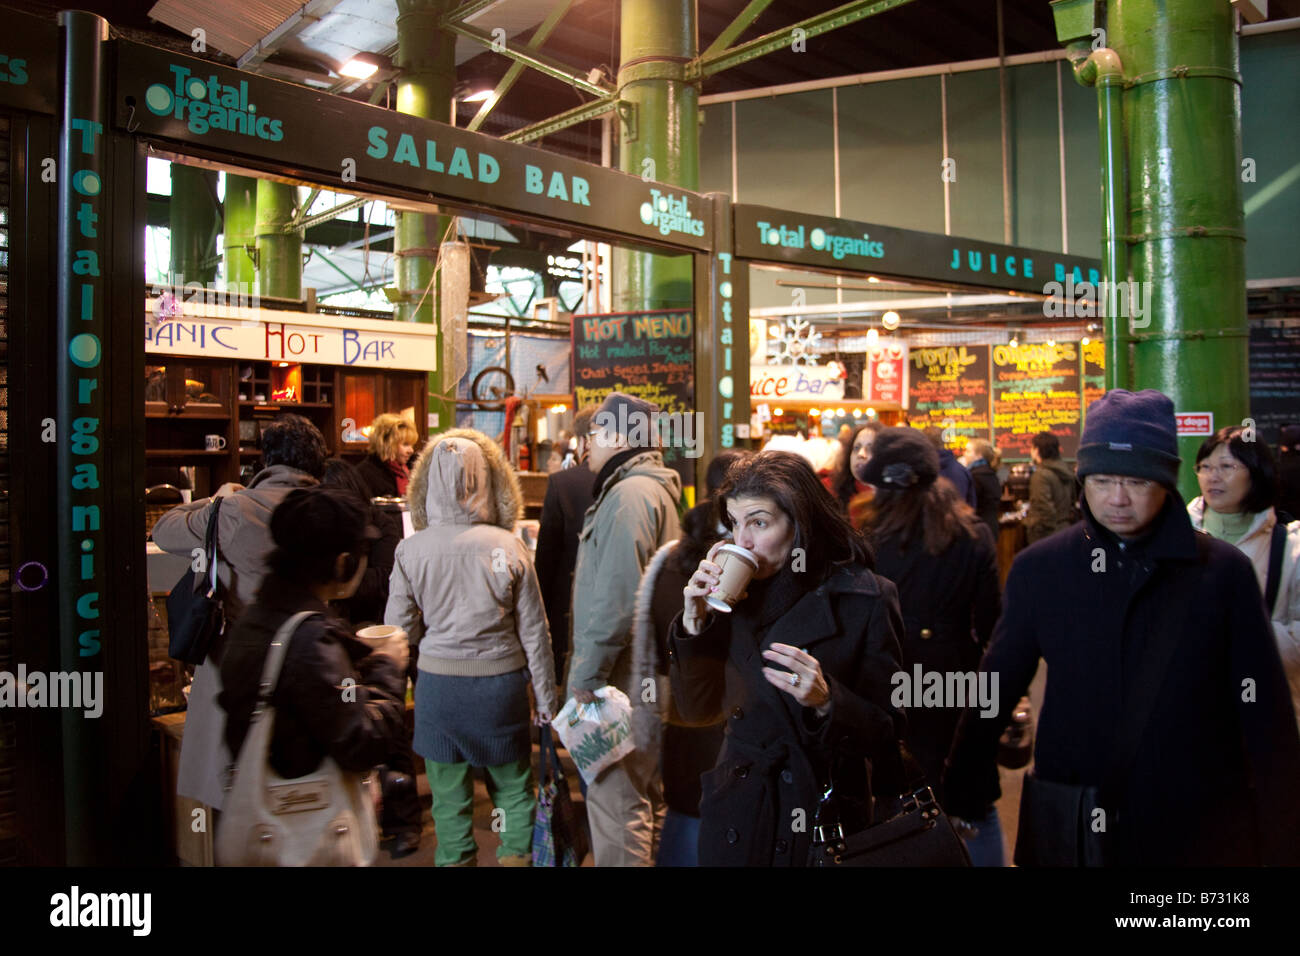 Borough market London England. - Stock Image